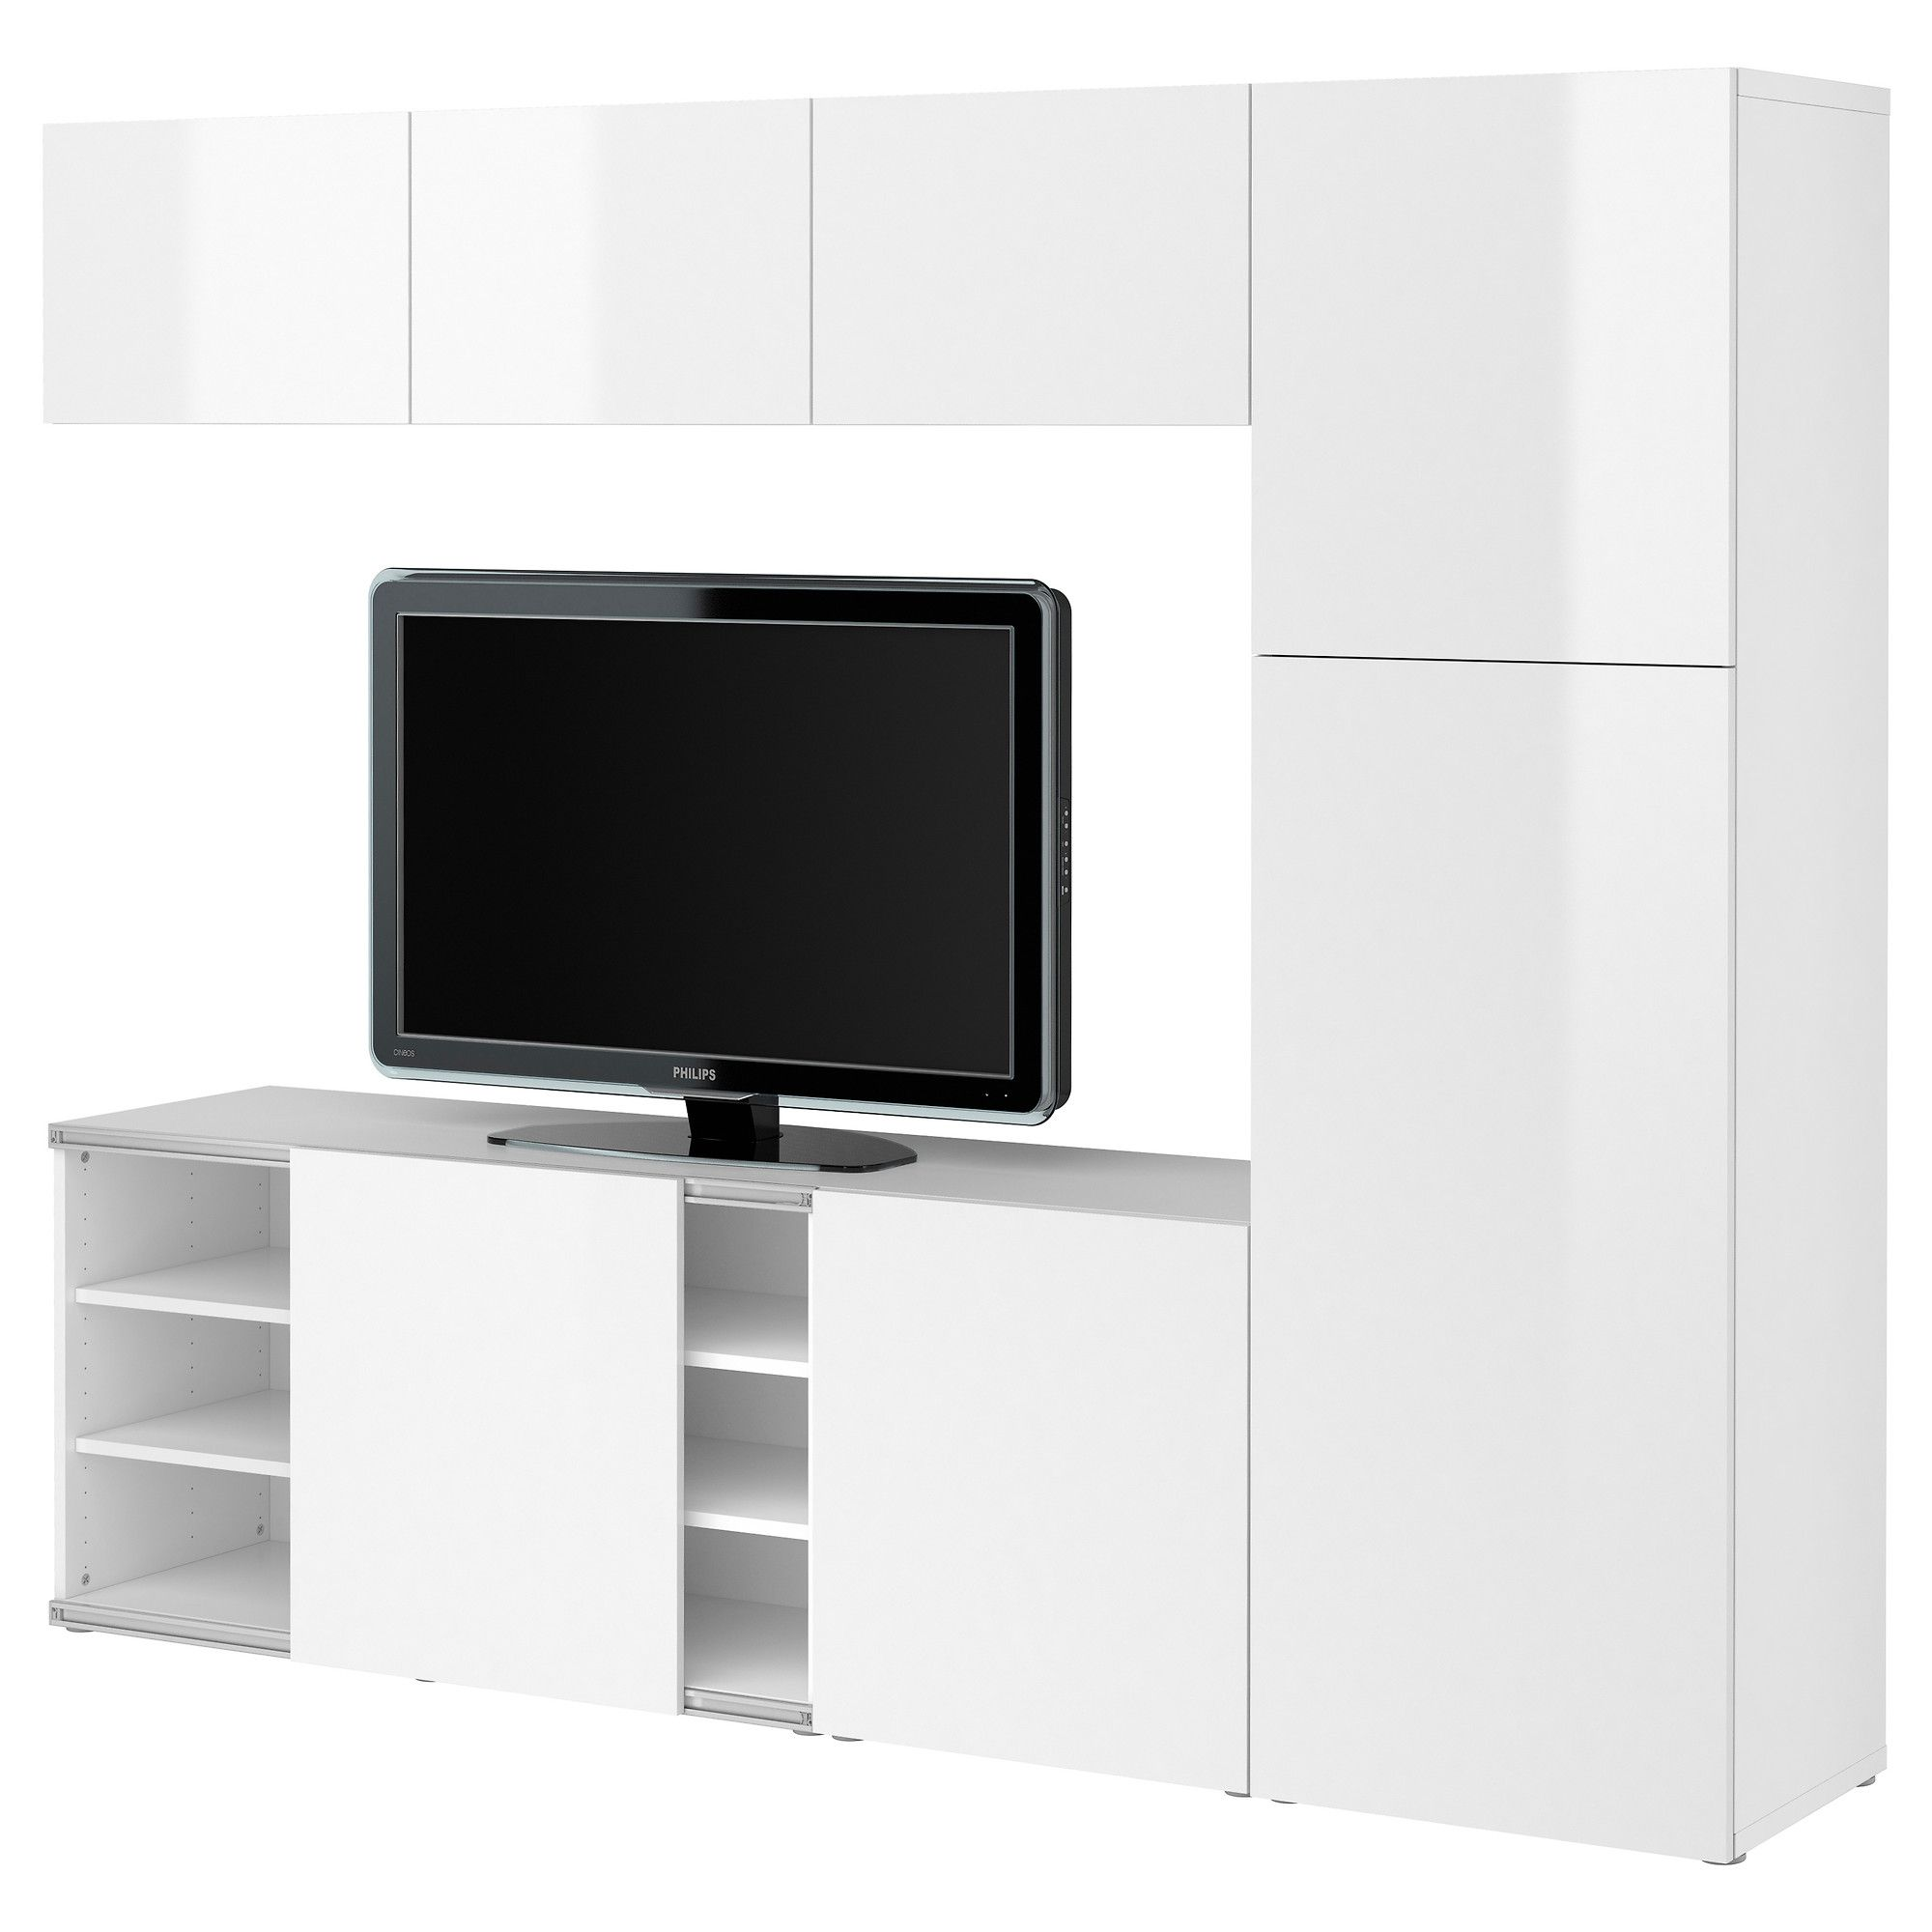 Furniture Home Furnishings Find Your Inspiration Modern White Living Room Modern Living Room Wall Living Room Wall Units